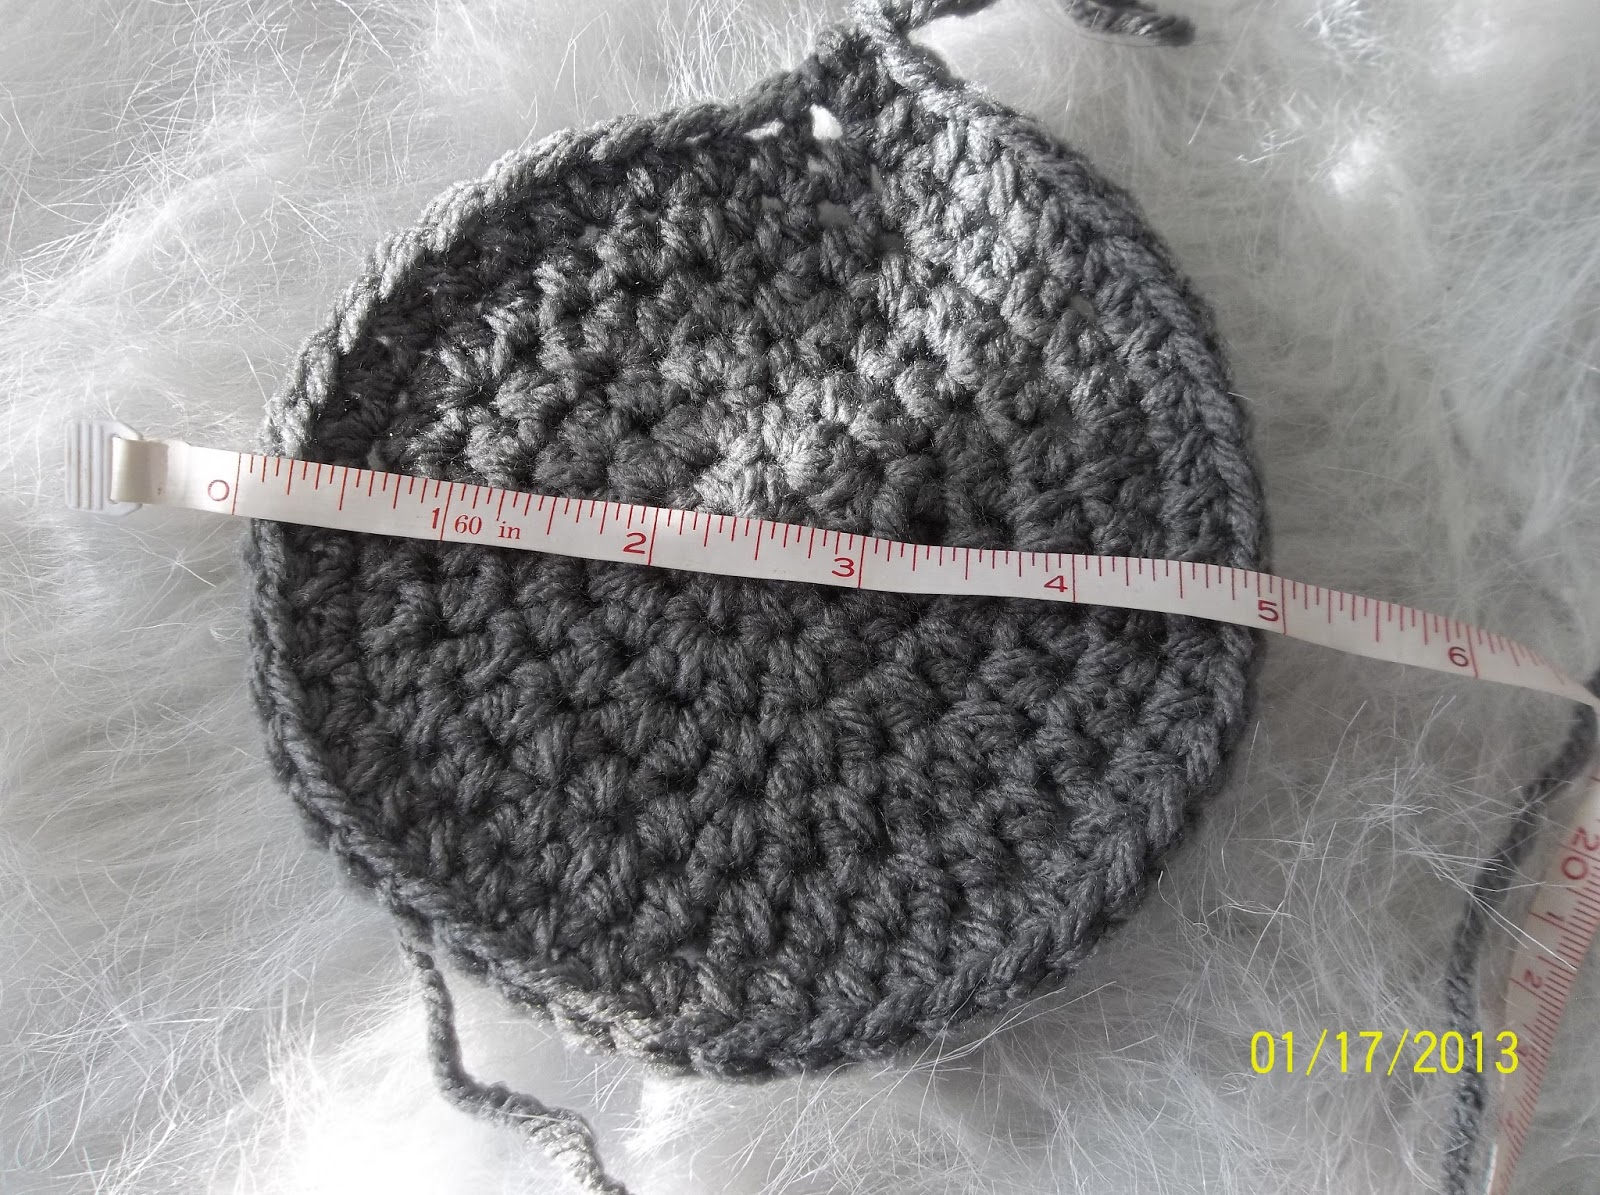 Creating Beautiful Things in Life: How to properly size crochet hats ...